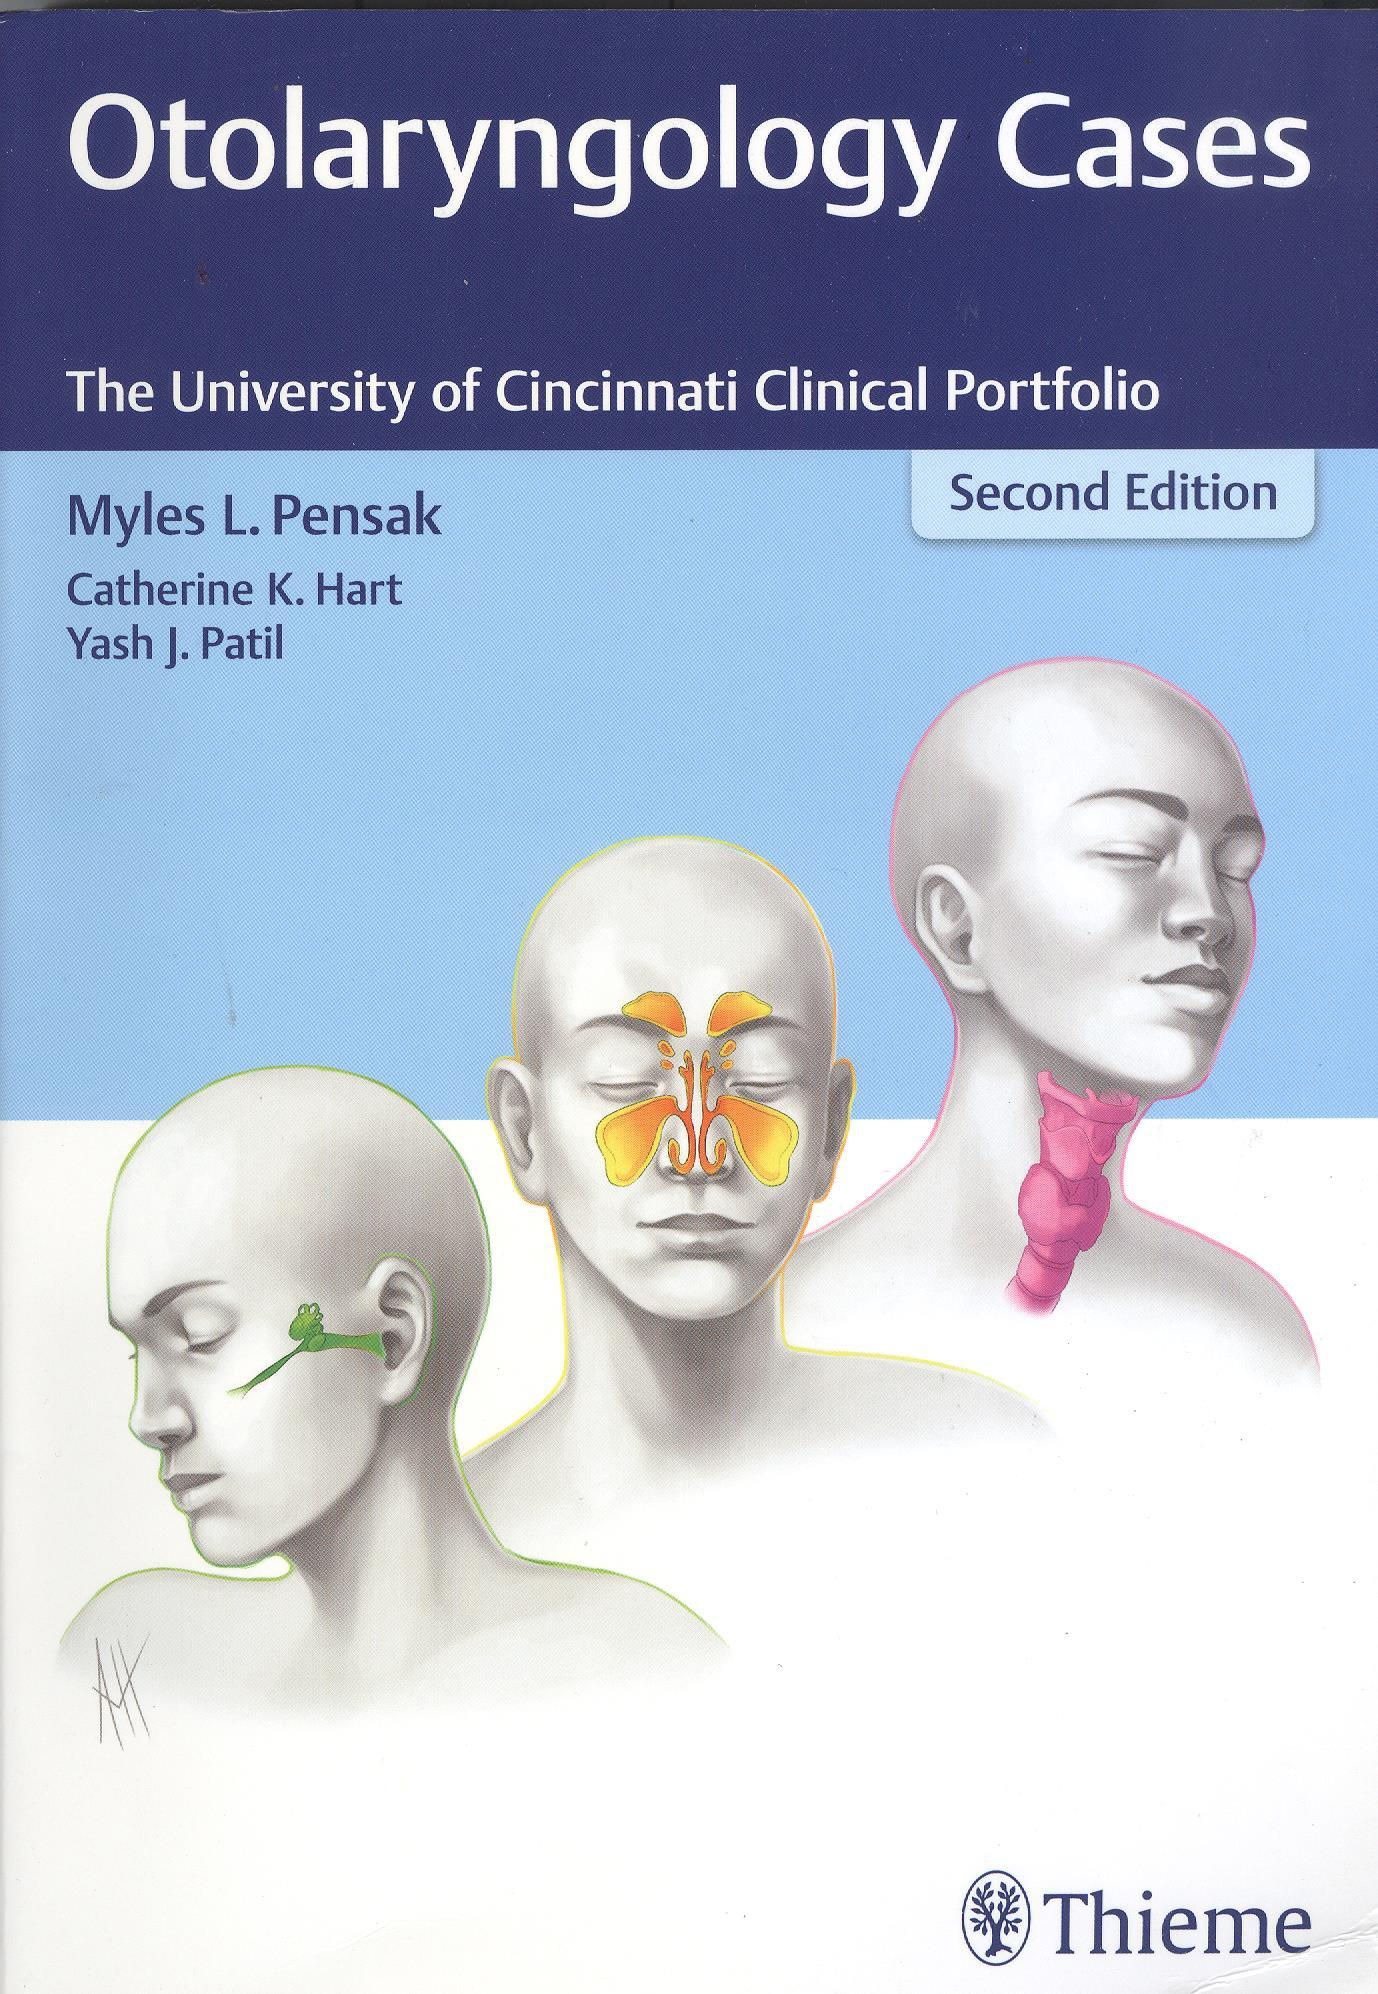 Otolaryngology Cases: The University of Cincinnati Clinical Portfolio, 2nd edition